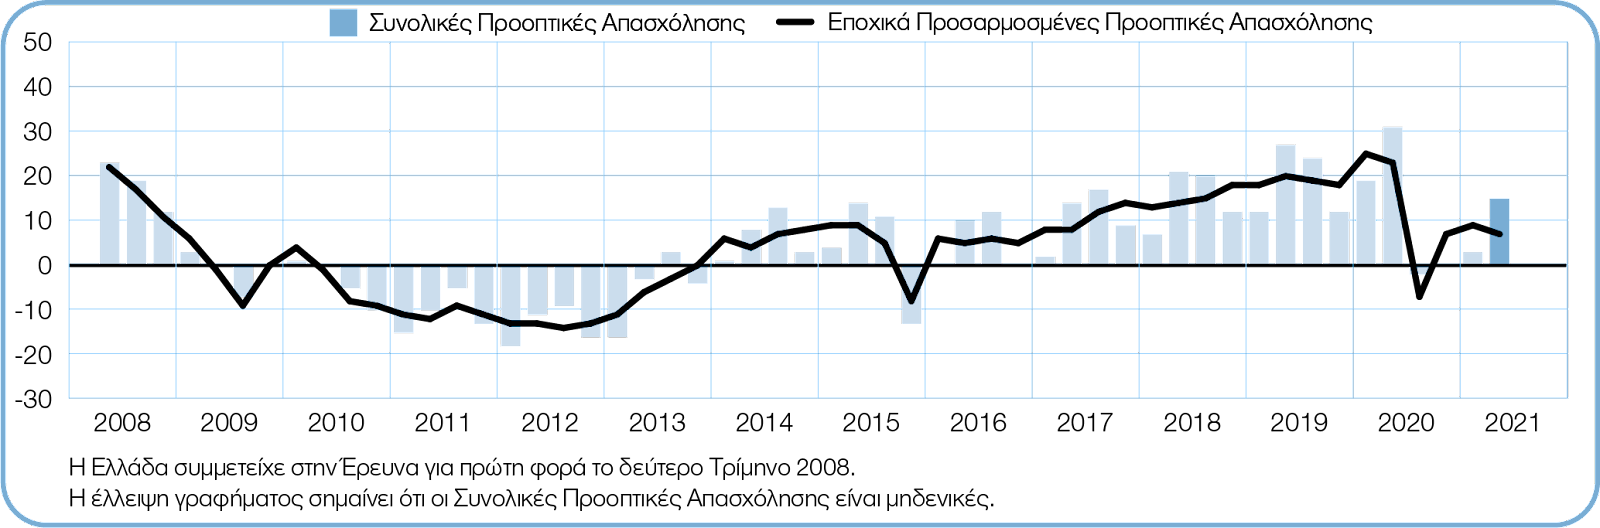 Chart, histogram  Description automatically generated